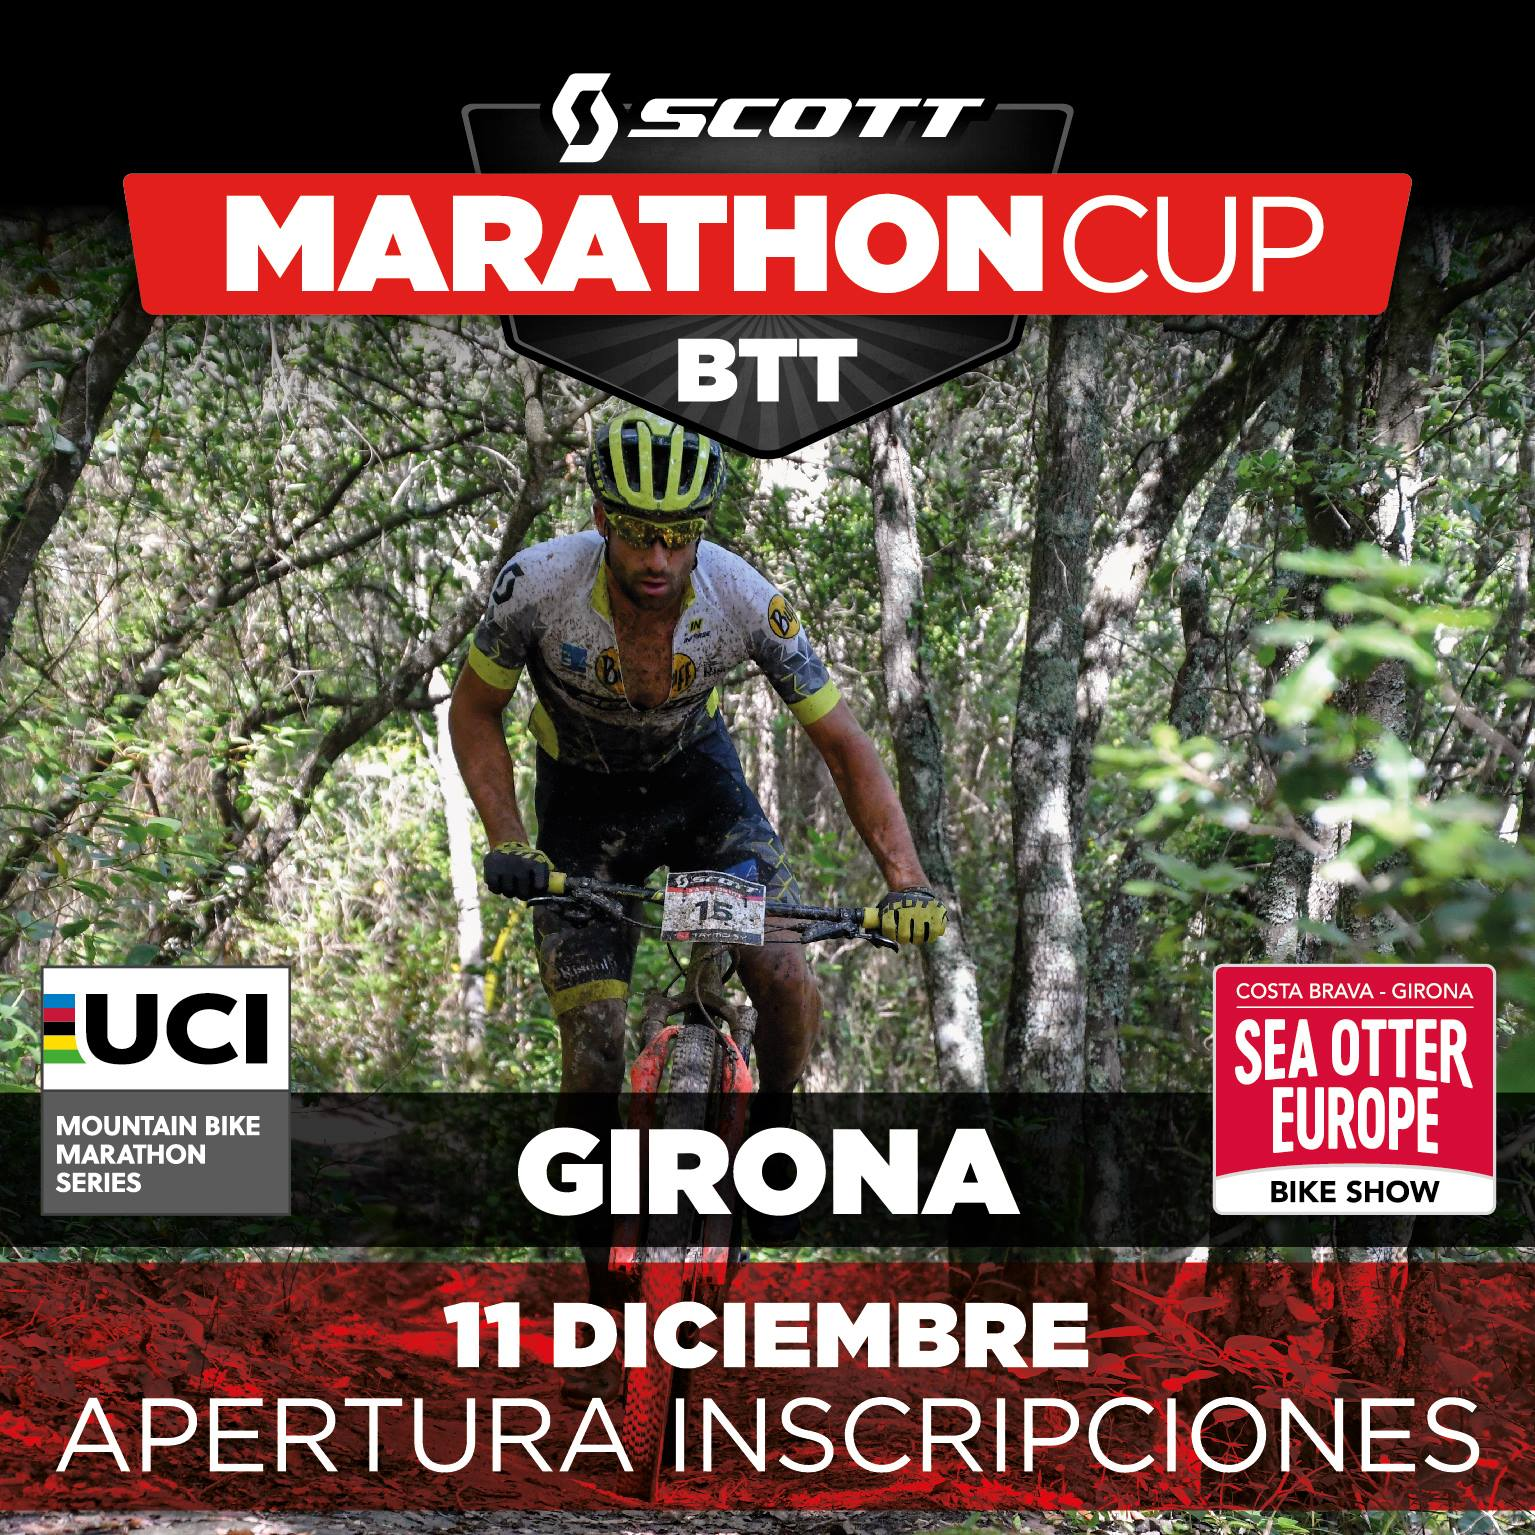 Girona�s Scott Marathon Cup:  an event with all the right ingredients